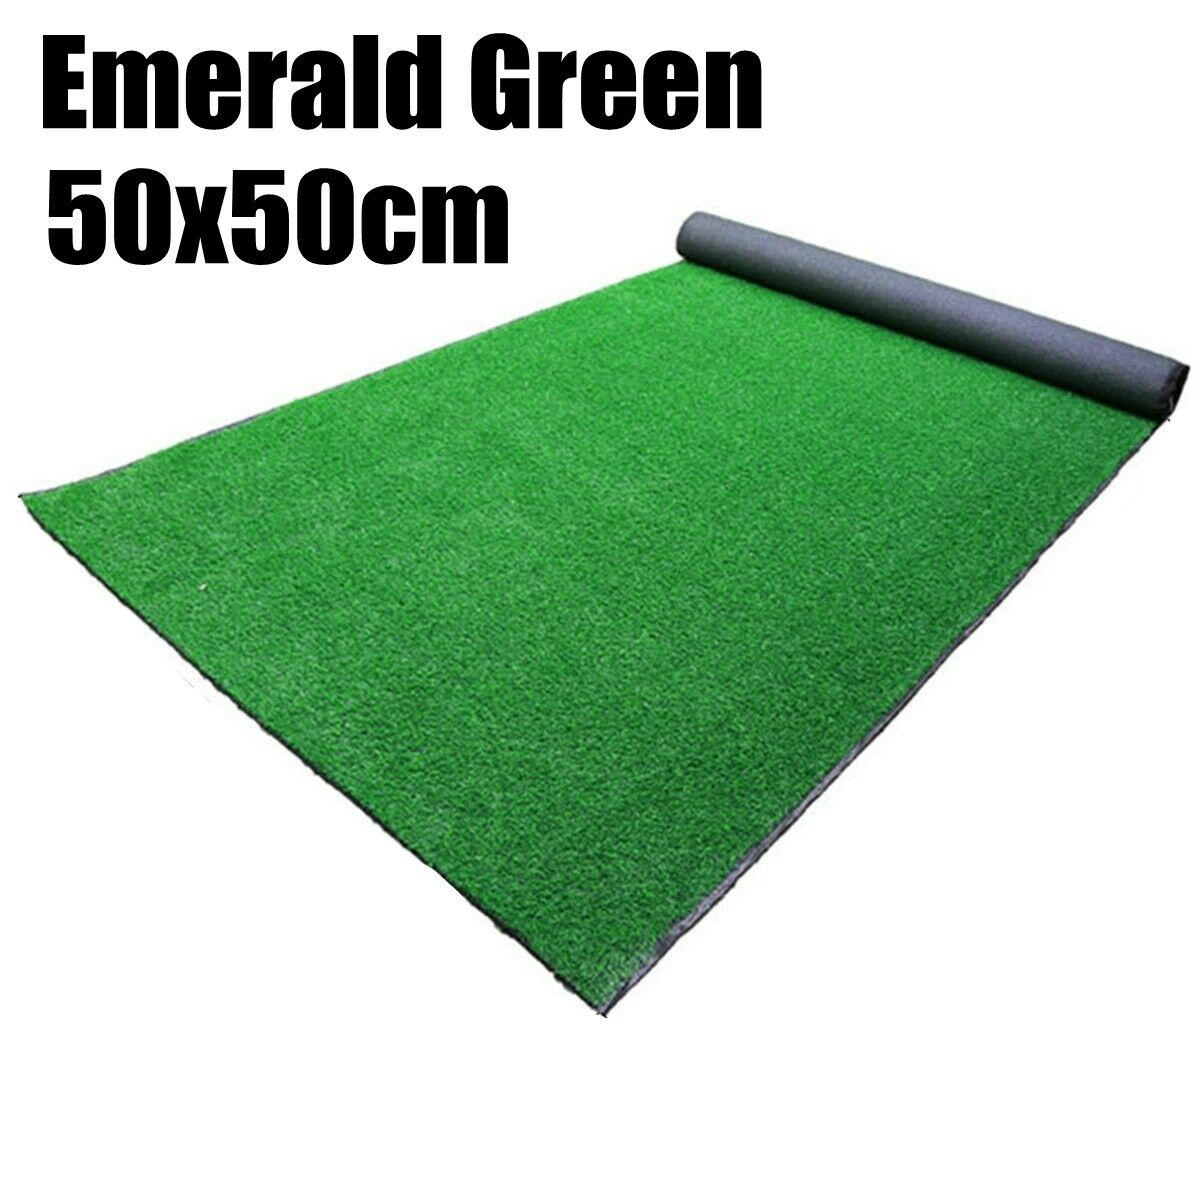 Red 200x400 cm Grass Rug Synthetic Lawn Basic